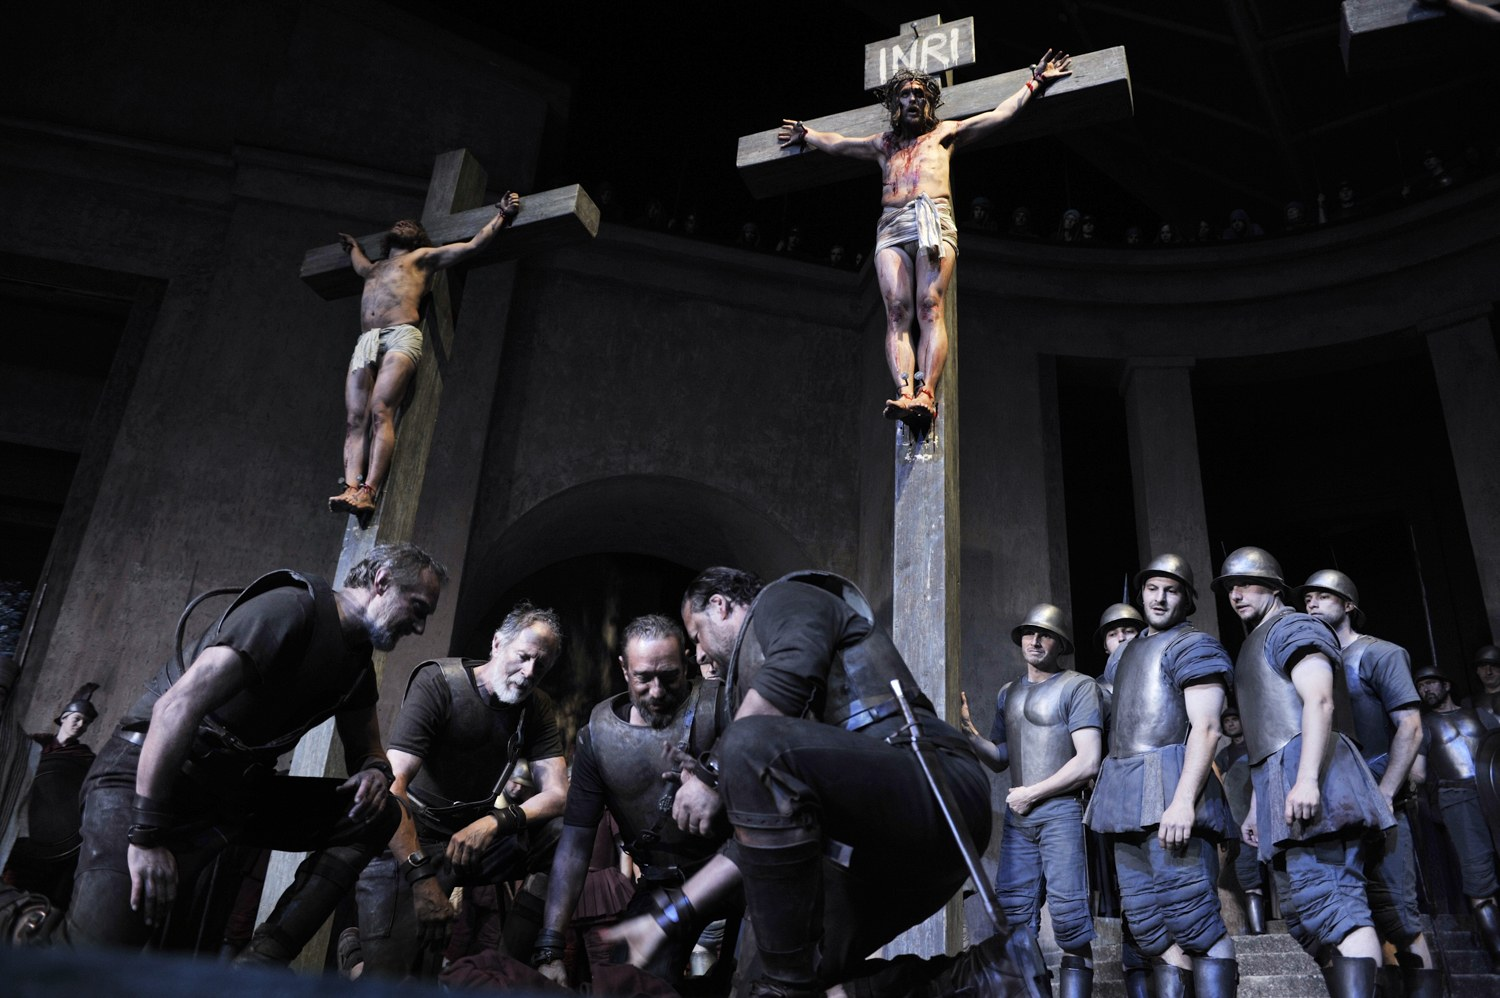 Crucifiction - Oberammergau Passion Play 2020 Photos: Oberammergau Passion Play 2020